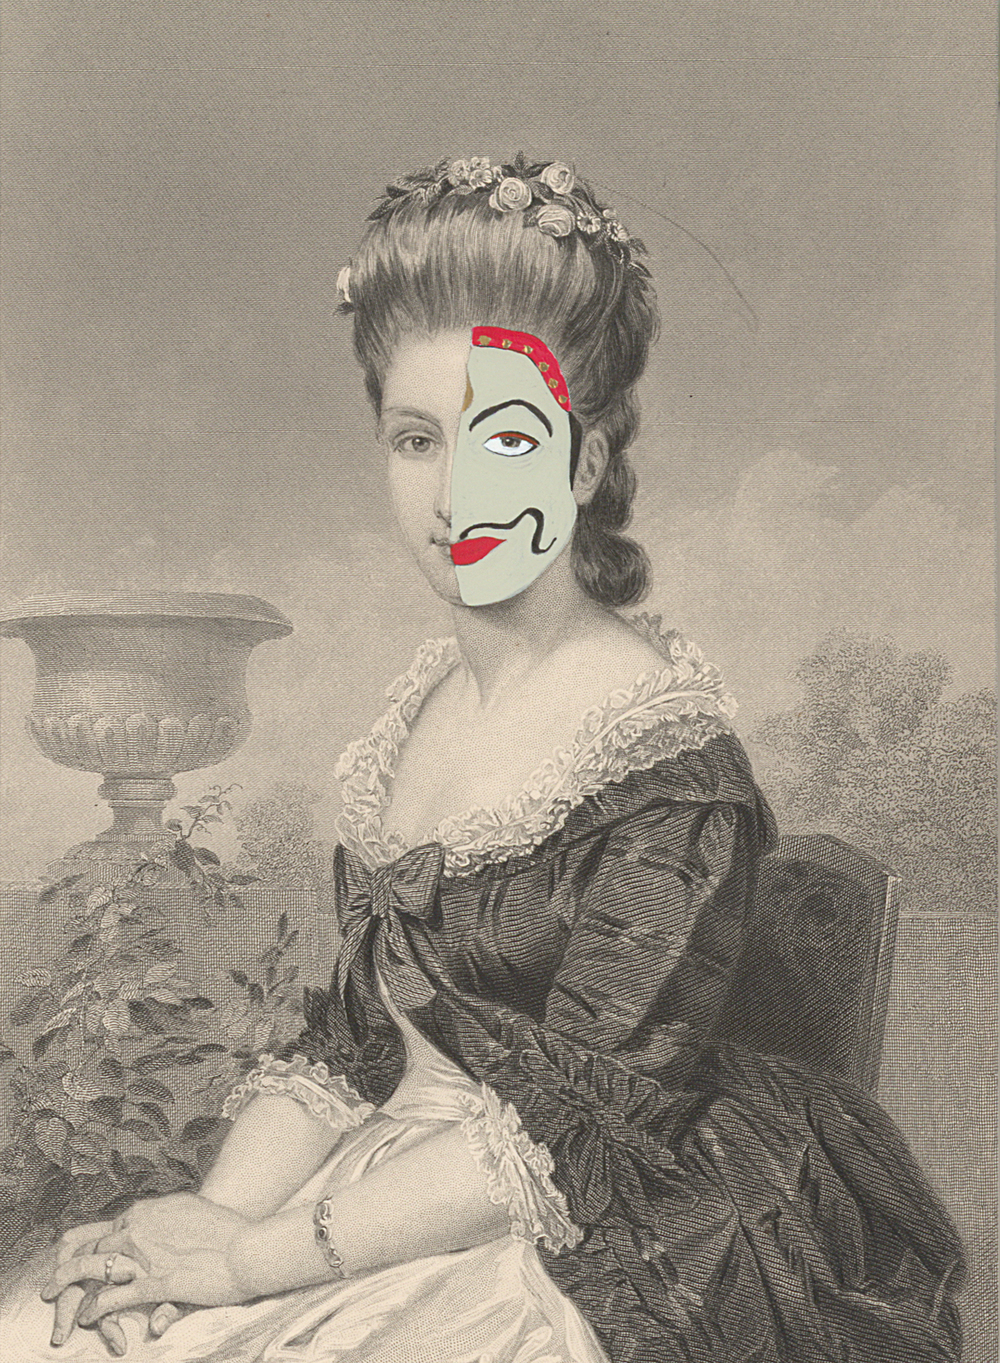 "Miss Lillian Frost 1860/2014 , gouache and ink on 19th century engraving, 7.5"" x 5"", 2014"